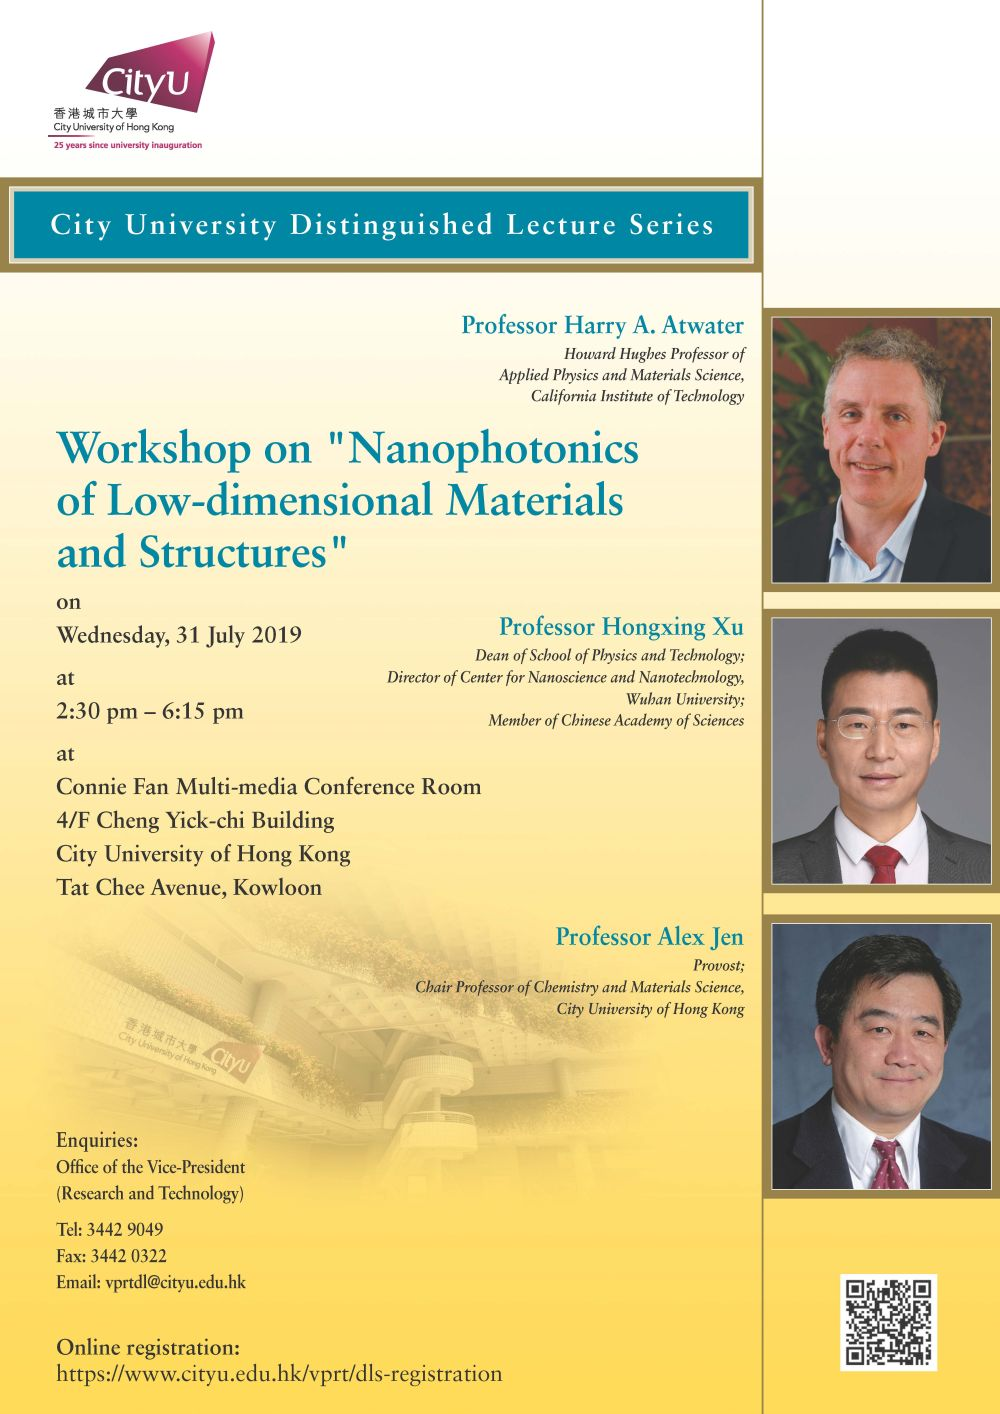 """Title: Workshop on """"Nanophotonics of Low-dimensional Materials and Structures"""" Speaker: Professor Harry A. Atwater; Professor Hongxing Xu; Professor Alex Jen Date: 31 July 2019 (Wednesday) Time: 2:30 pm – 6:30 pm (tea break at 4:20 pm – 4:40 pm) Venue: Connie Fan Multi-media Conference Room, 4/F Cheng Yick-chi Building, City University of Hong Kong, Tat Chee Avenue, Kowloon"""